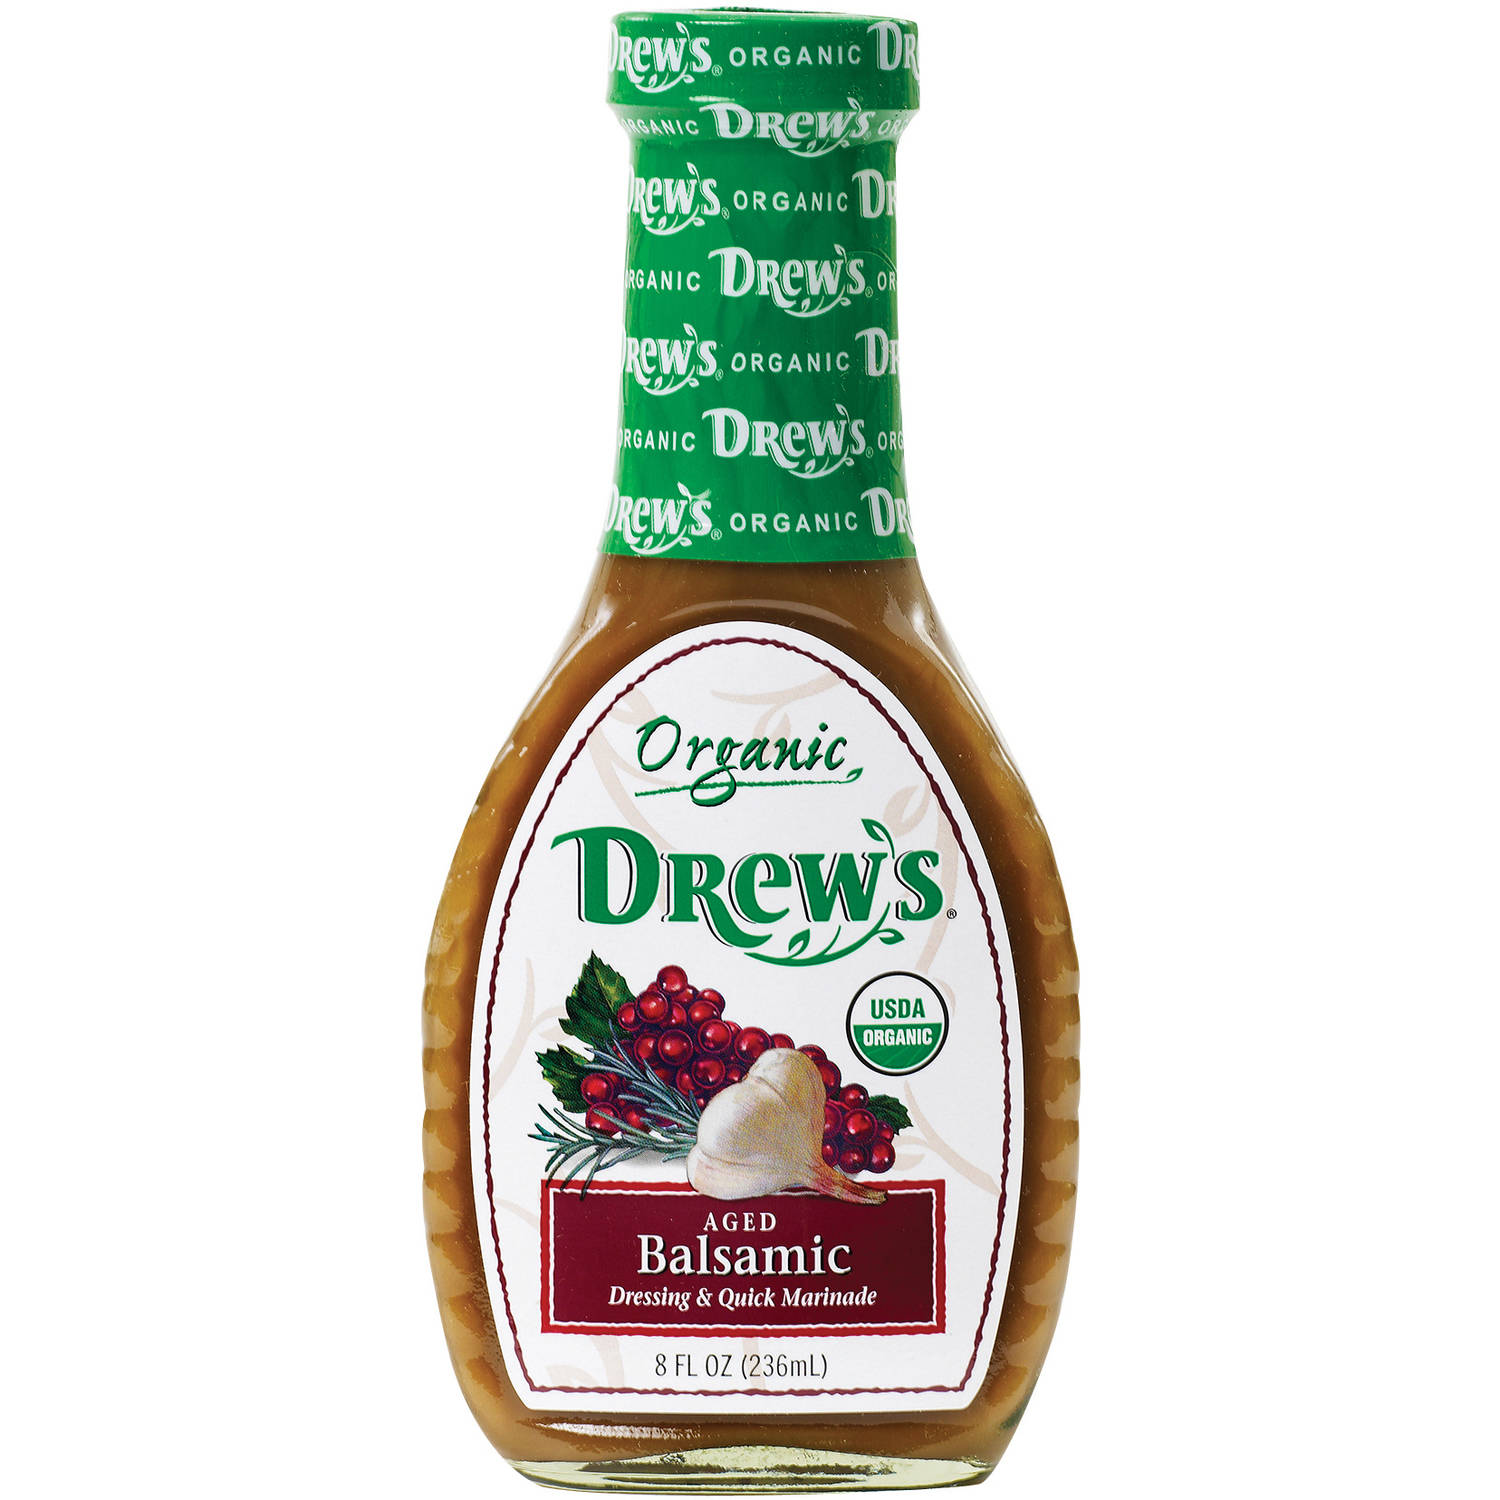 Drew's Organic Aged Balsamic Dressing & Quick Marinade, 8 fl oz, (Pack of 6)